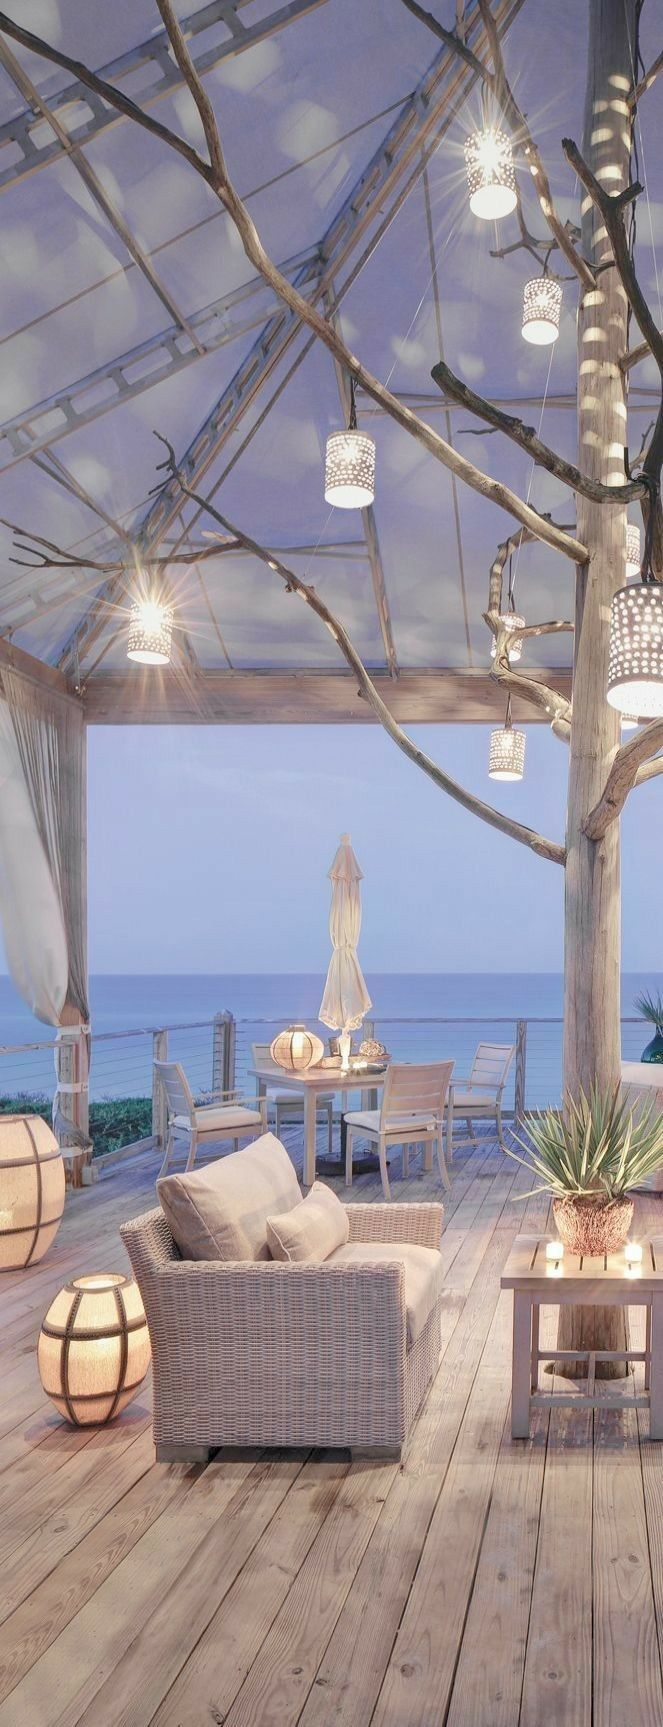 What an incredibly cozy, romantic patio at this beach house. #strandhuis